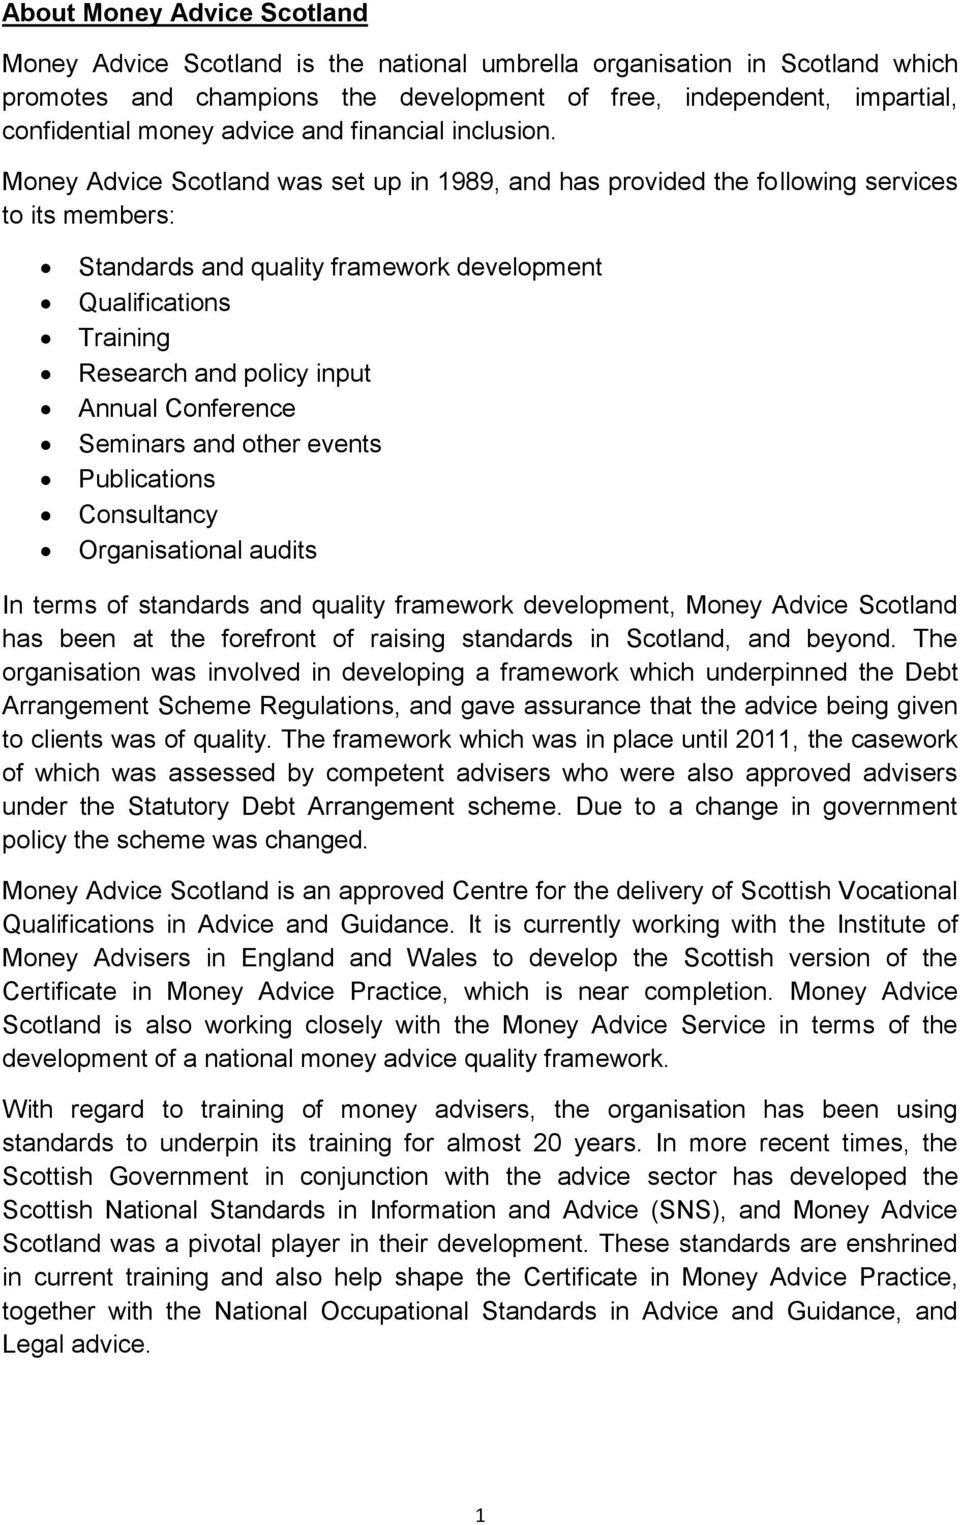 Money Advice Scotland was set up in 1989, and has provided the following services to its members: Standards and quality framework development Qualifications Training Research and policy input Annual